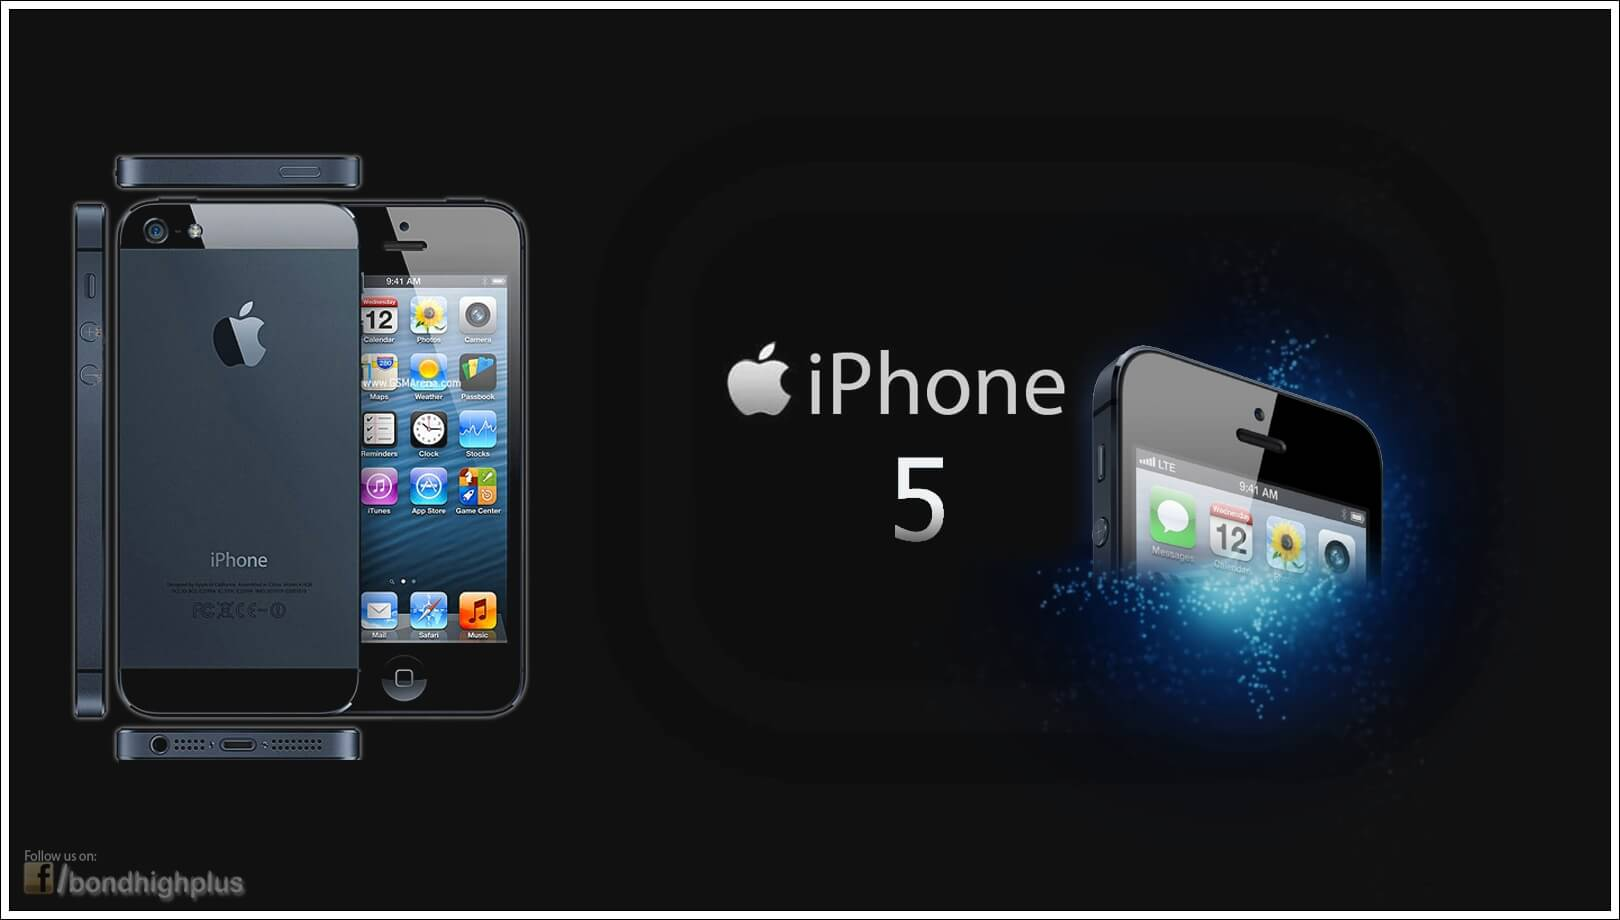 Differences between Apple iPhone 5 and 4S